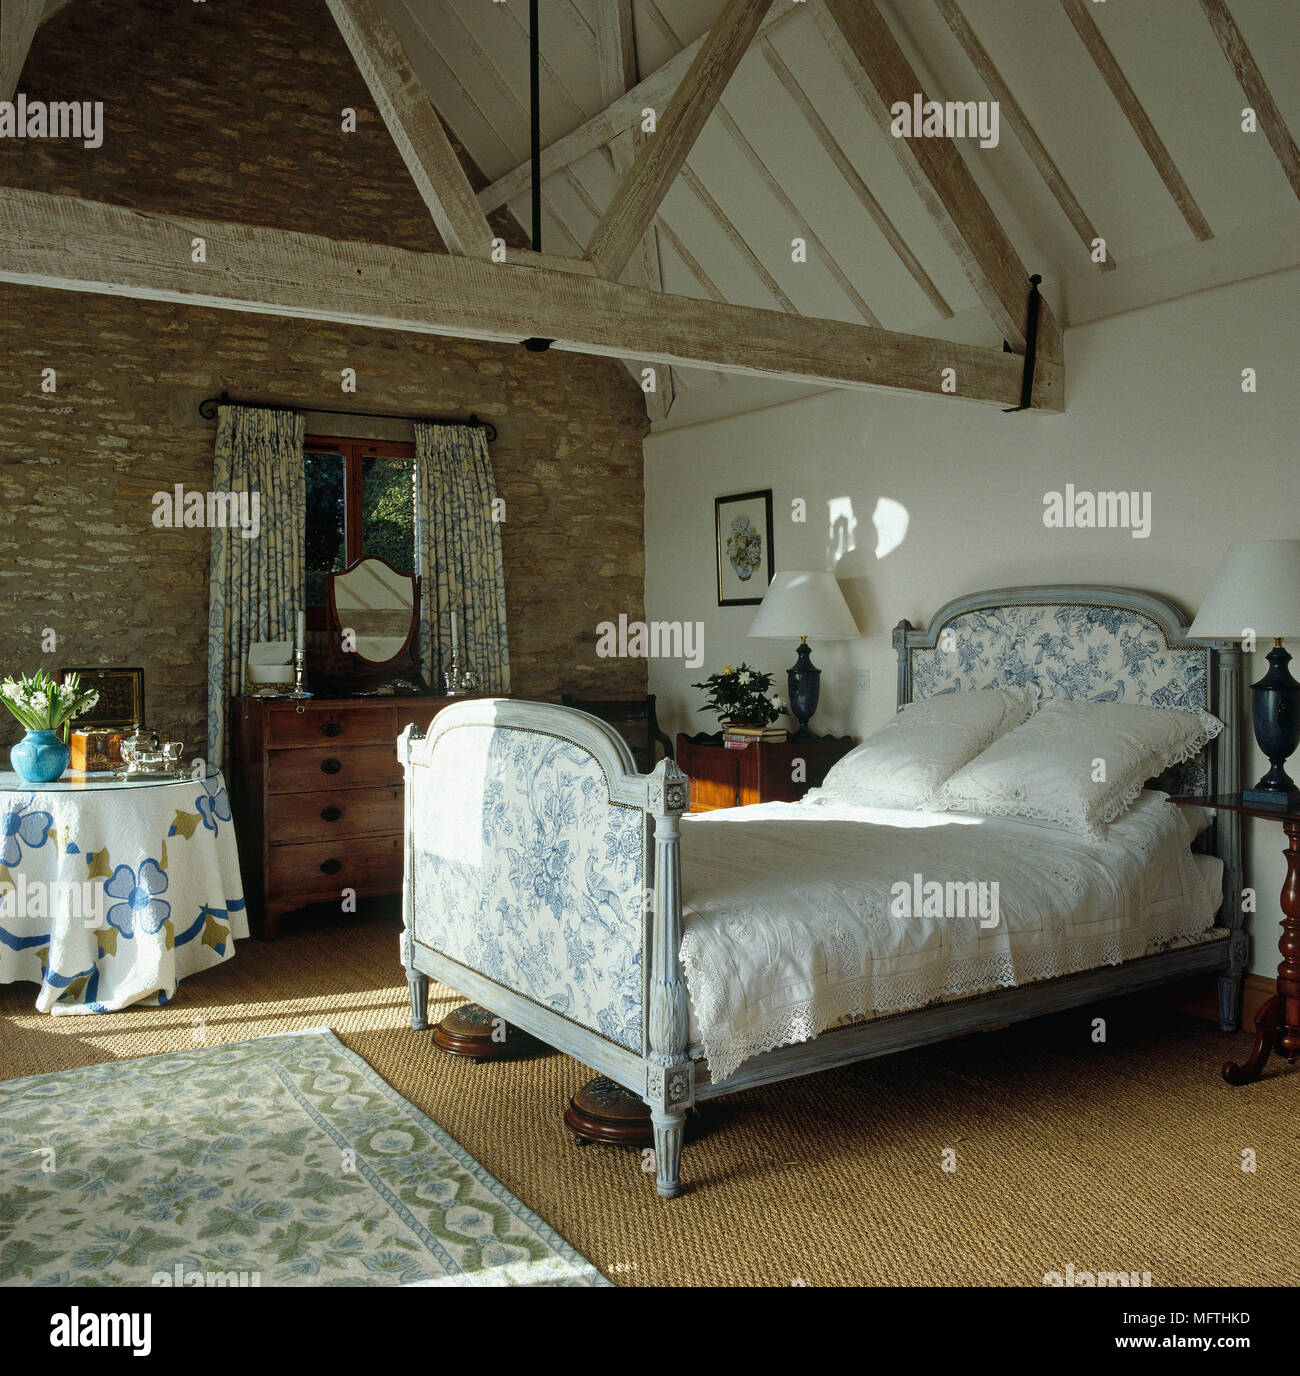 Antique French bed in country style bedroom Stock Photo: 181864241 ...